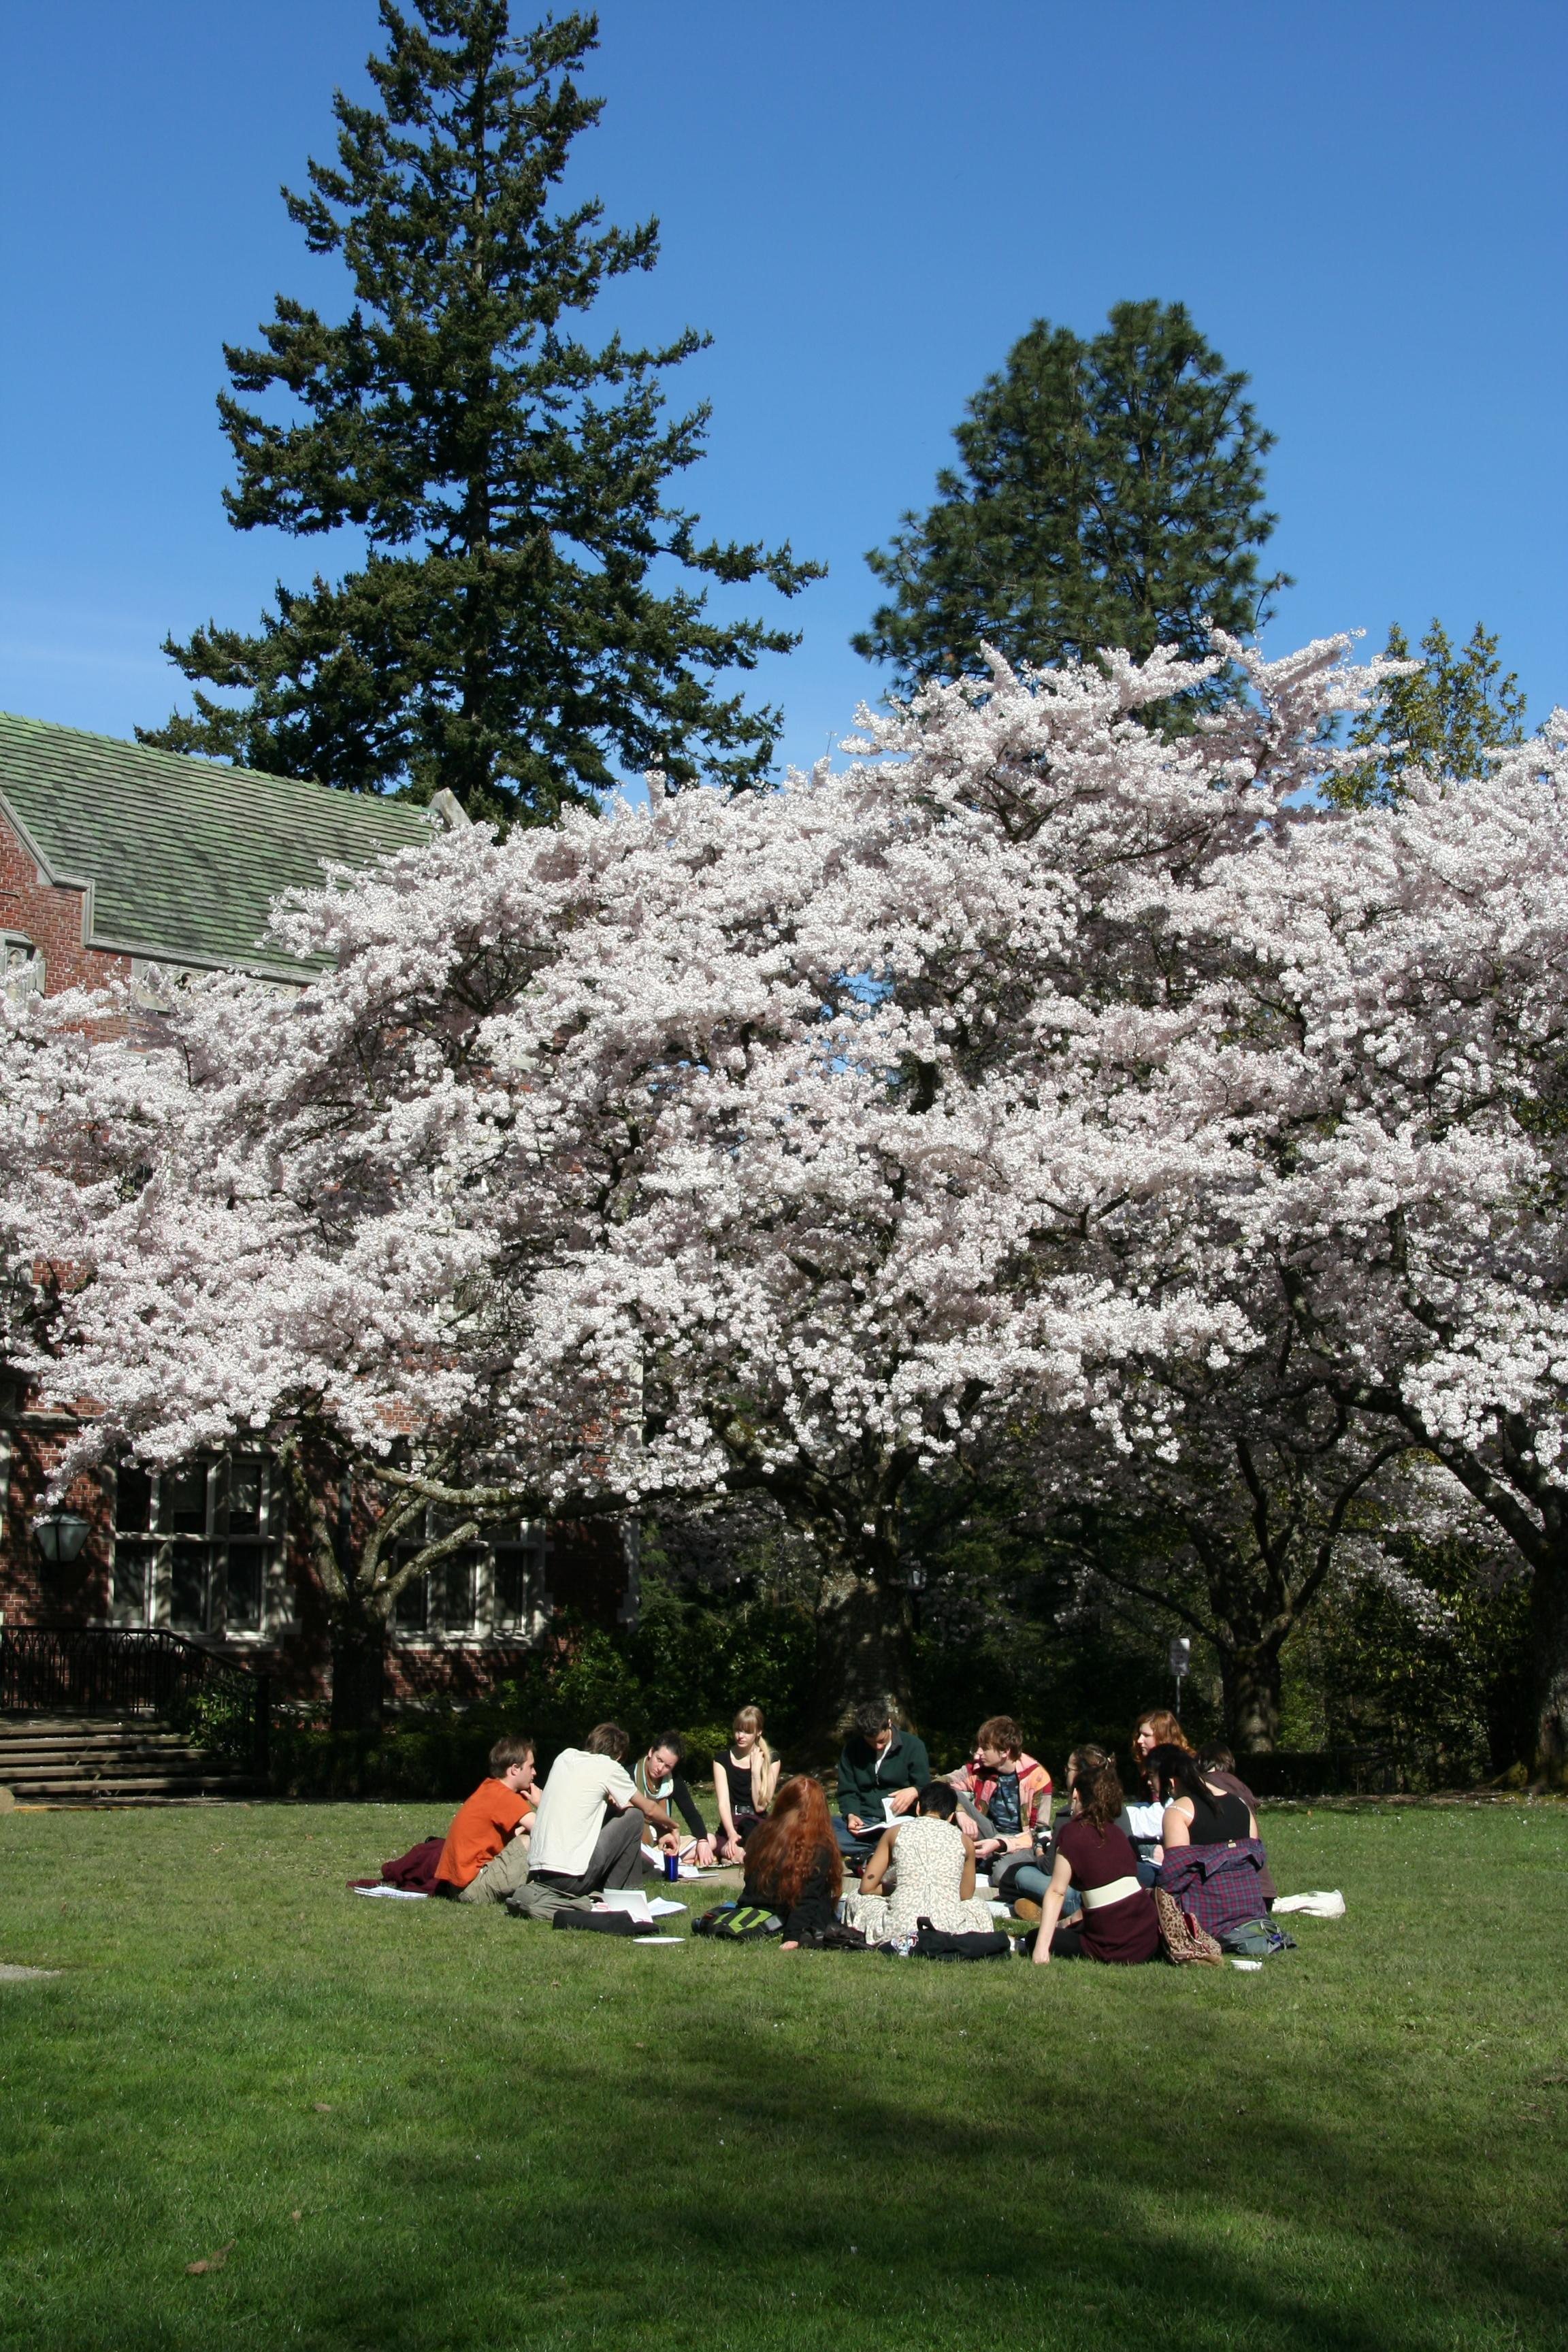 Students under Cherry Blossom trees in Eliot Circle